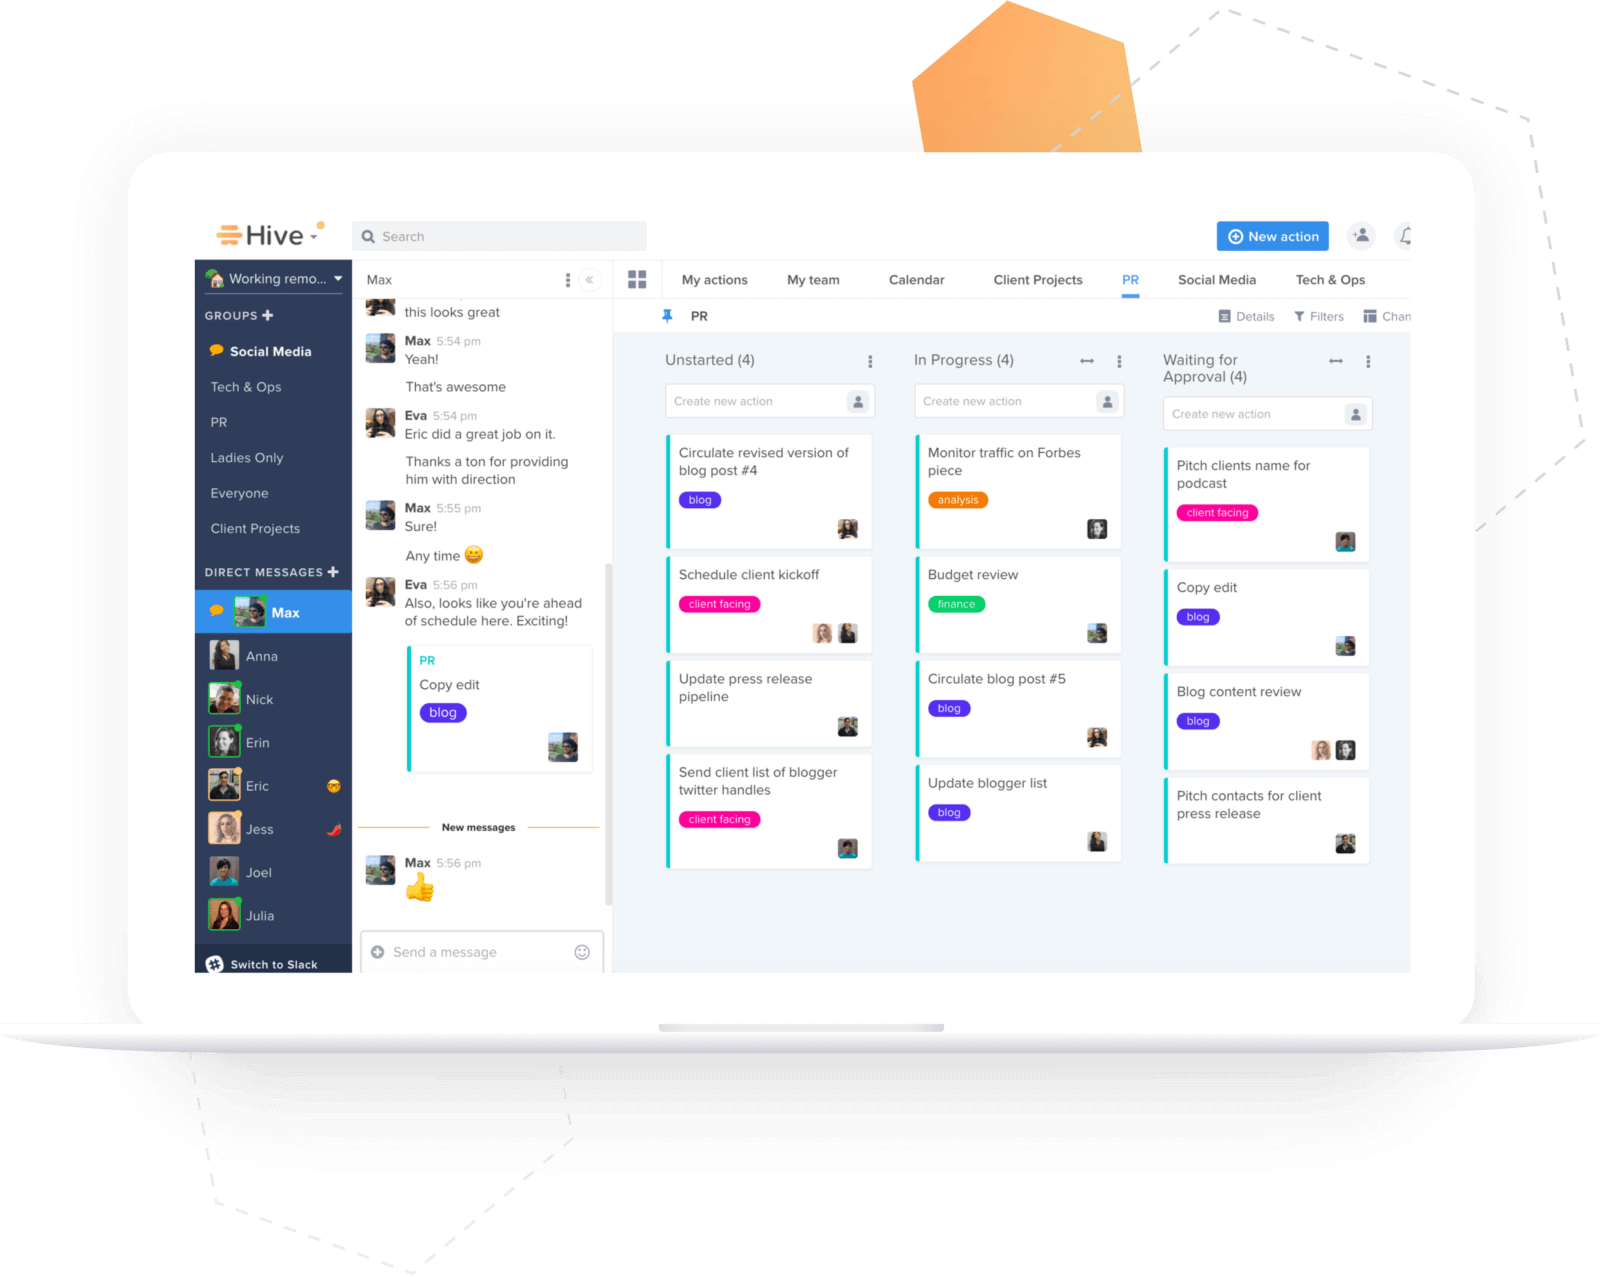 Kanban view and chat in Hive.